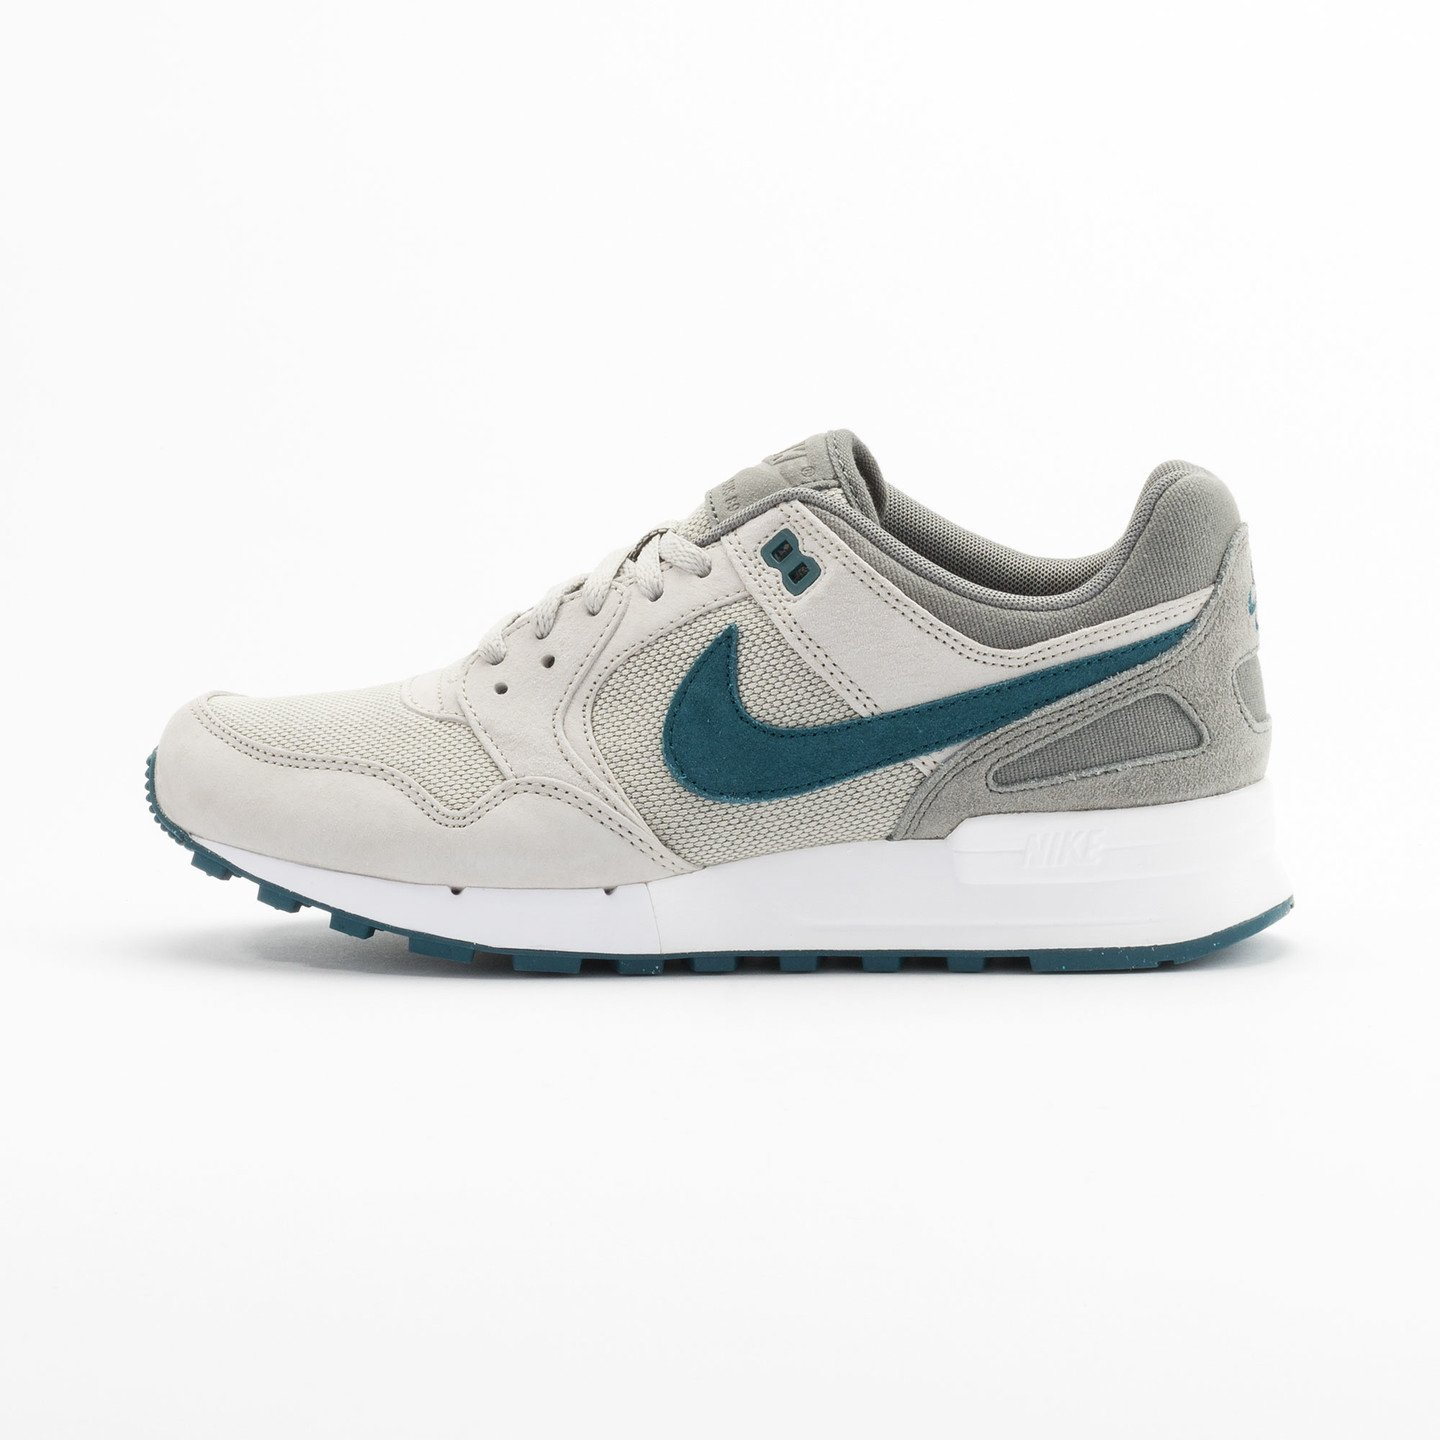 Nike Air Pegasus 89 Premium Lunar Grey / Teal - Tumbled Grey 724269-030-45.5